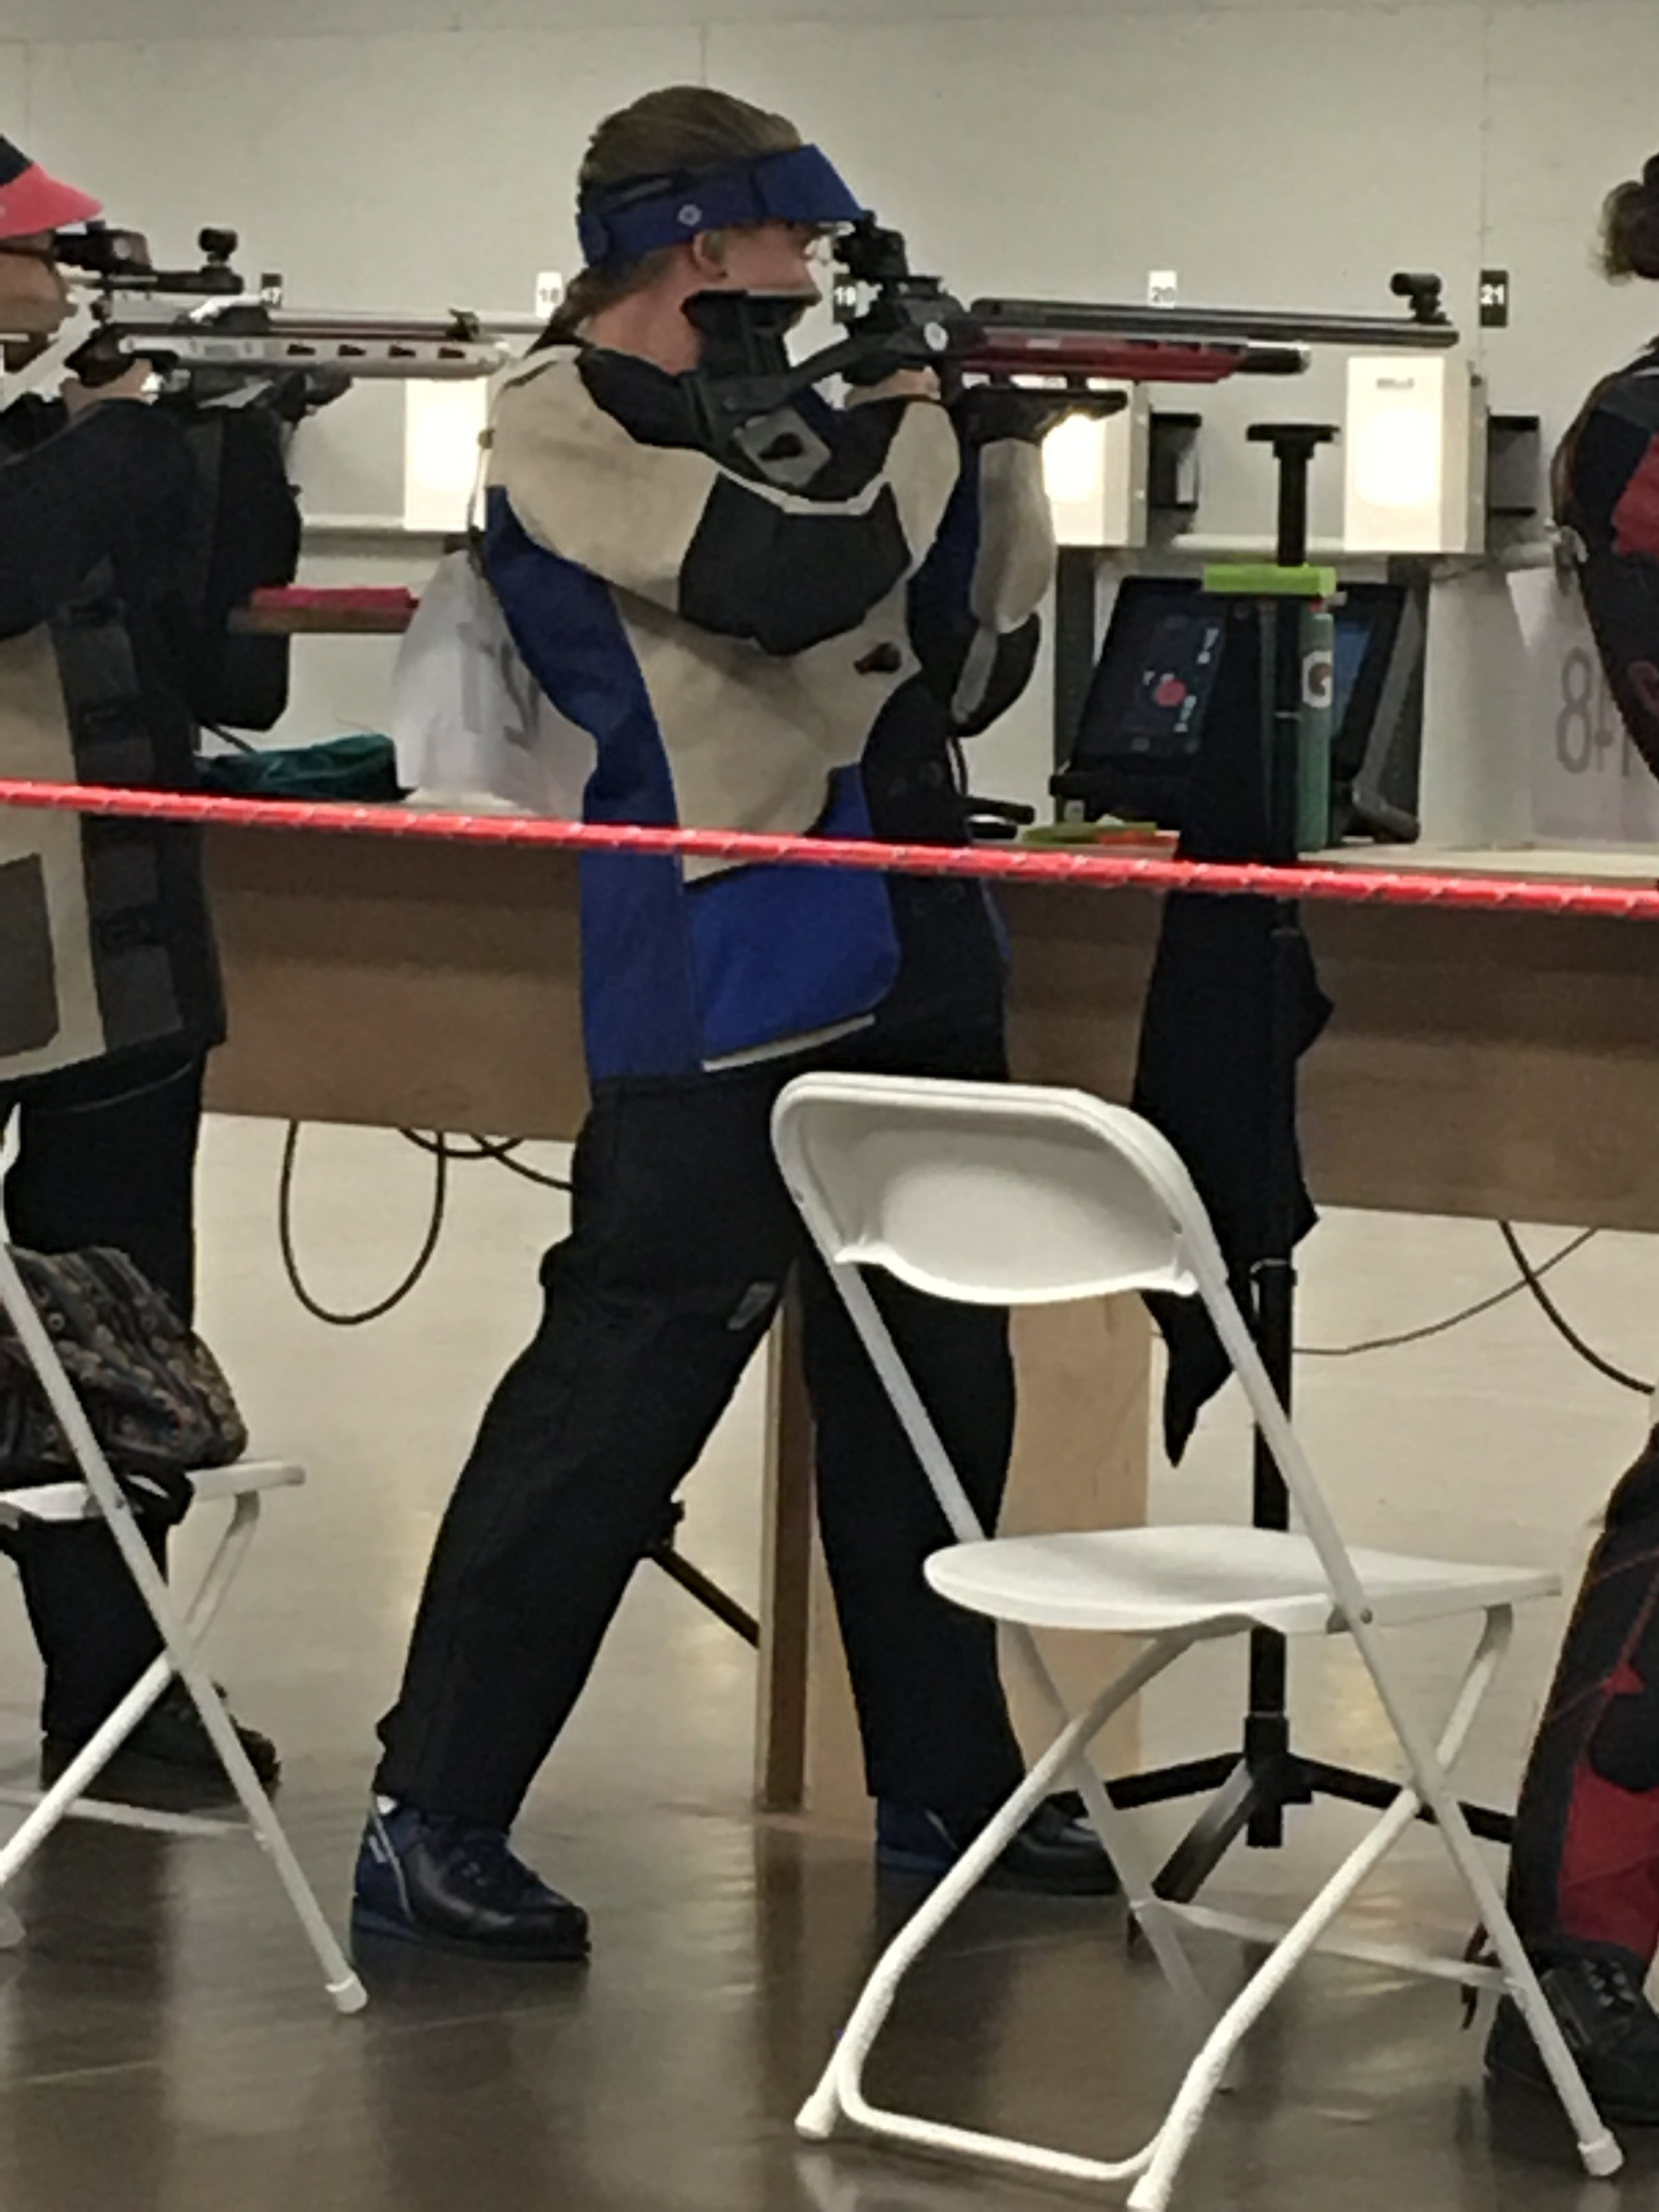 2017 Canadian National Rifle Championships - 10m Air Rifle Women, Cookstown, Ontario Samantha Walstra